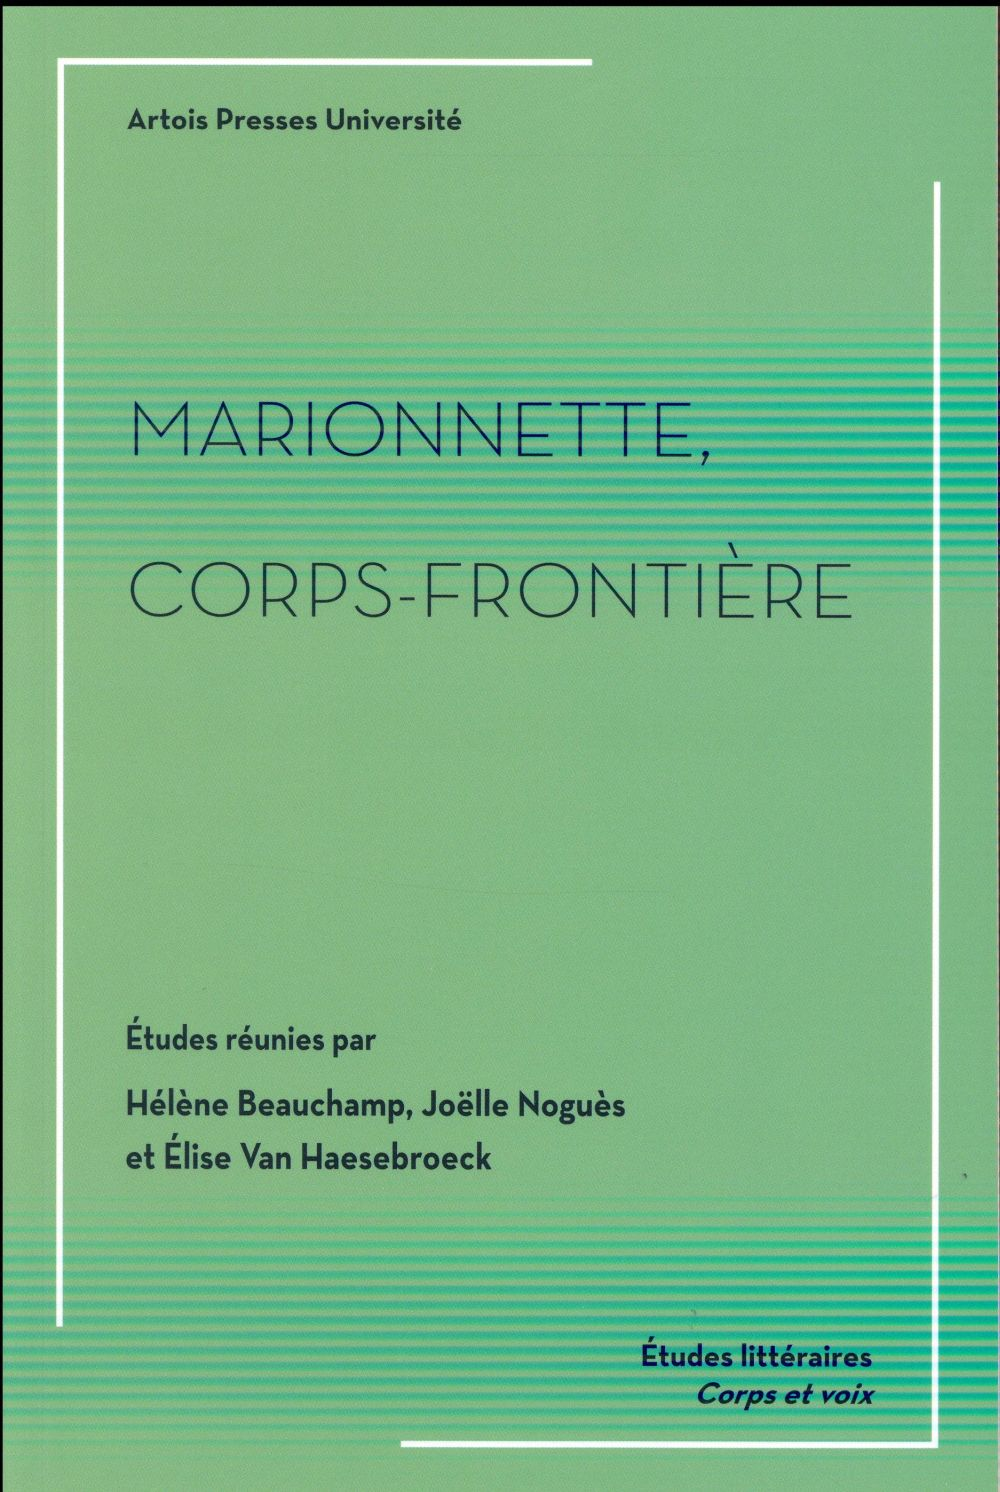 Marionnette corps frontiere